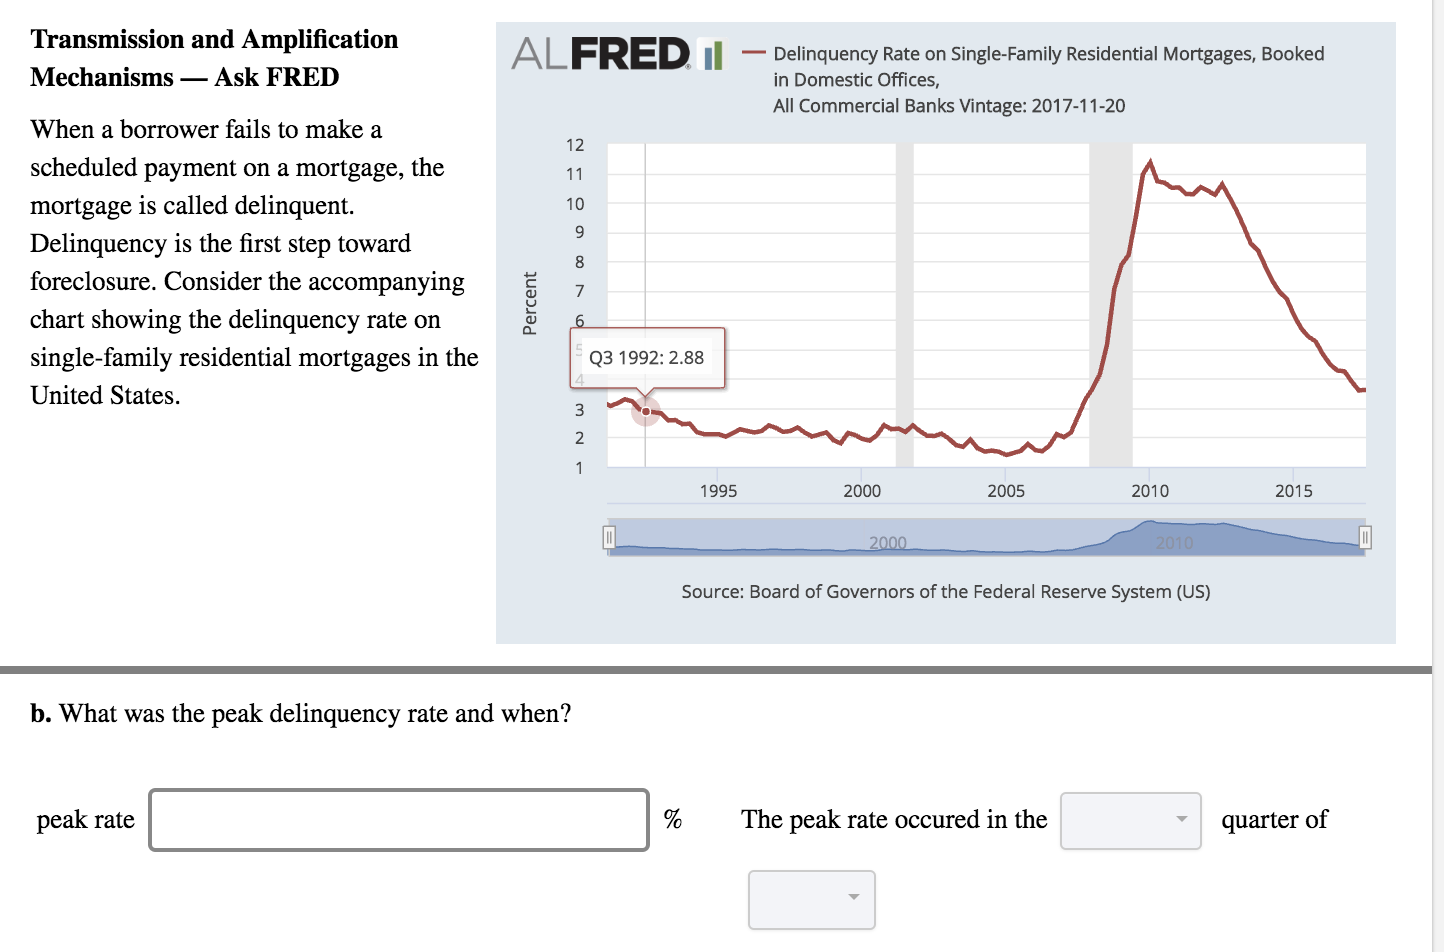 Transmission and Amplification Mechanisms- Ask FRED When a borrower fails to make a scheduled payment on a mortgage, the mortgage is called delinquent. Delinquency is the first step toward foreclosure. Consider the accompanying chart showing the delinquency rate on single-family residential mortgages in the United States. ALFRED -Delinquency Rate on Single-Family Residential Mortgages, Booked in Domestic Offices All Commercial Banks Vintage: 2017-11-20 12 10 8 Q3 1992: 2.88 2 1995 2000 2005 2010 2015 Source: Board of Governors of the Federal Reserve System (US) b. What was the peak delinquency rate and when? peak rate % The peak rate occured in the quarter of